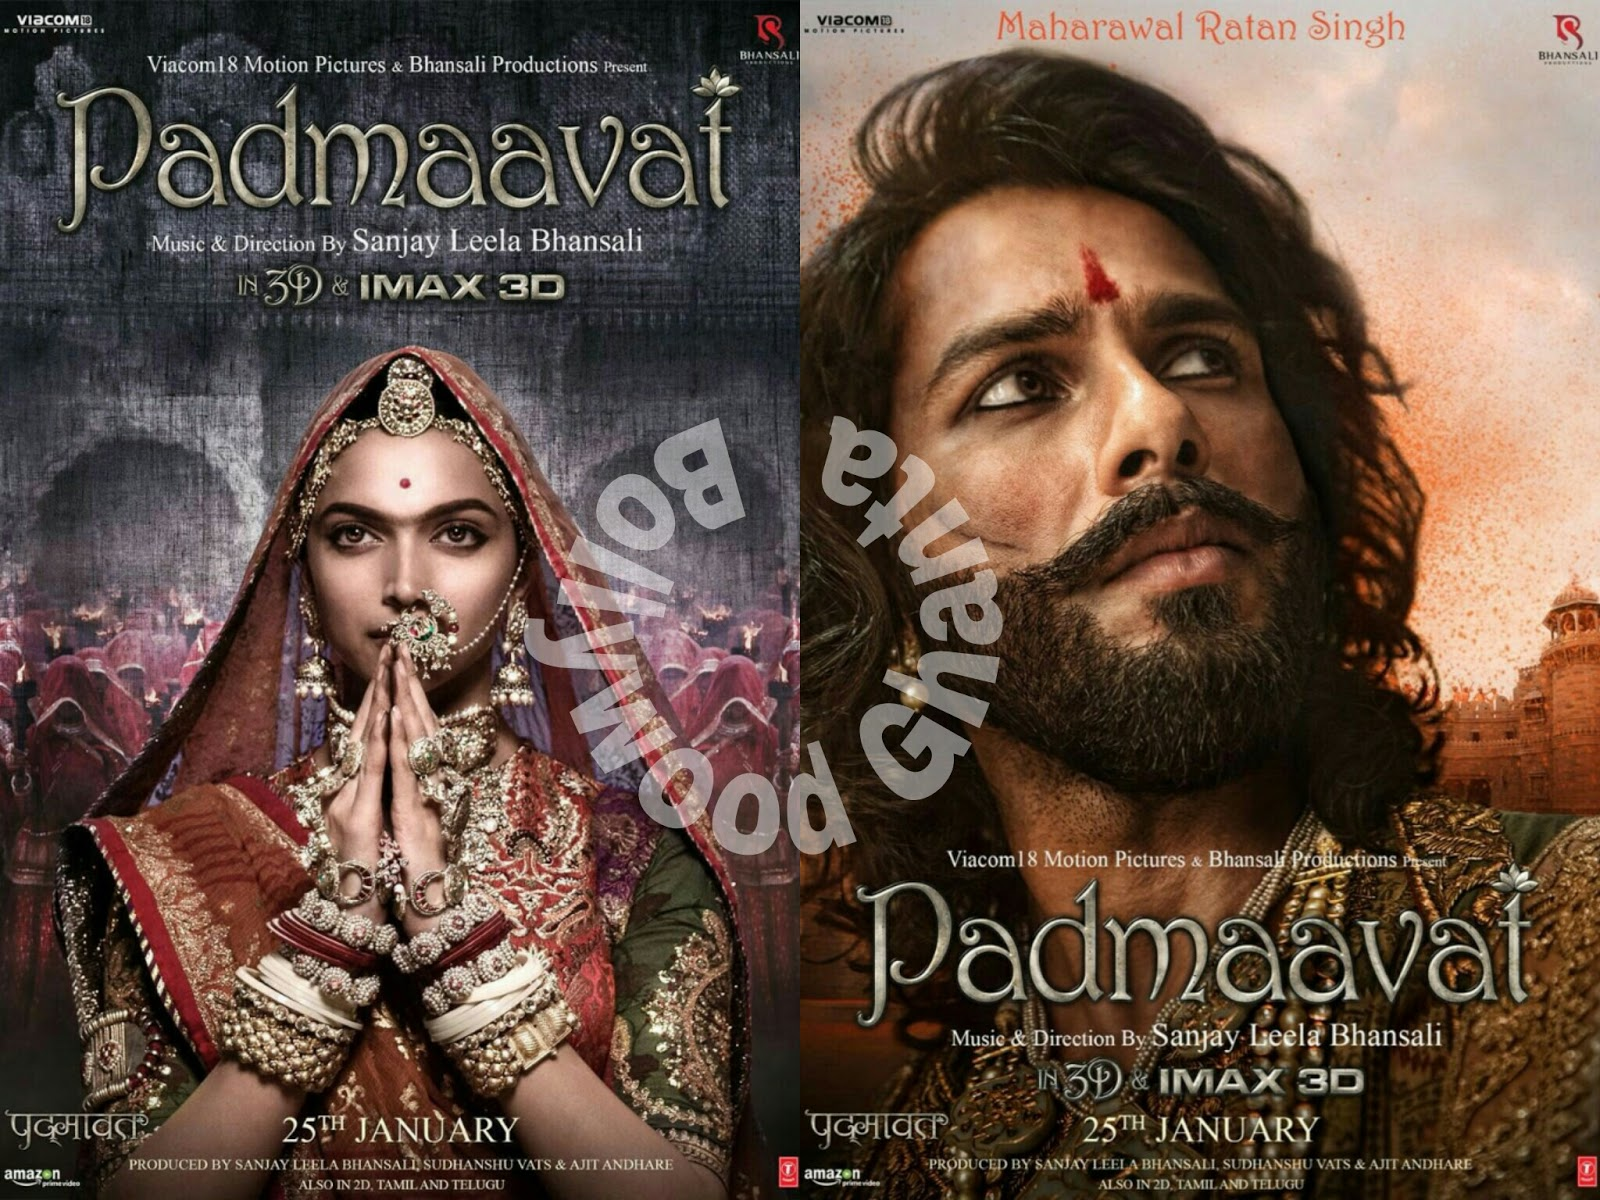 Padmavat will be released on 25th Jan also in IMax-3D